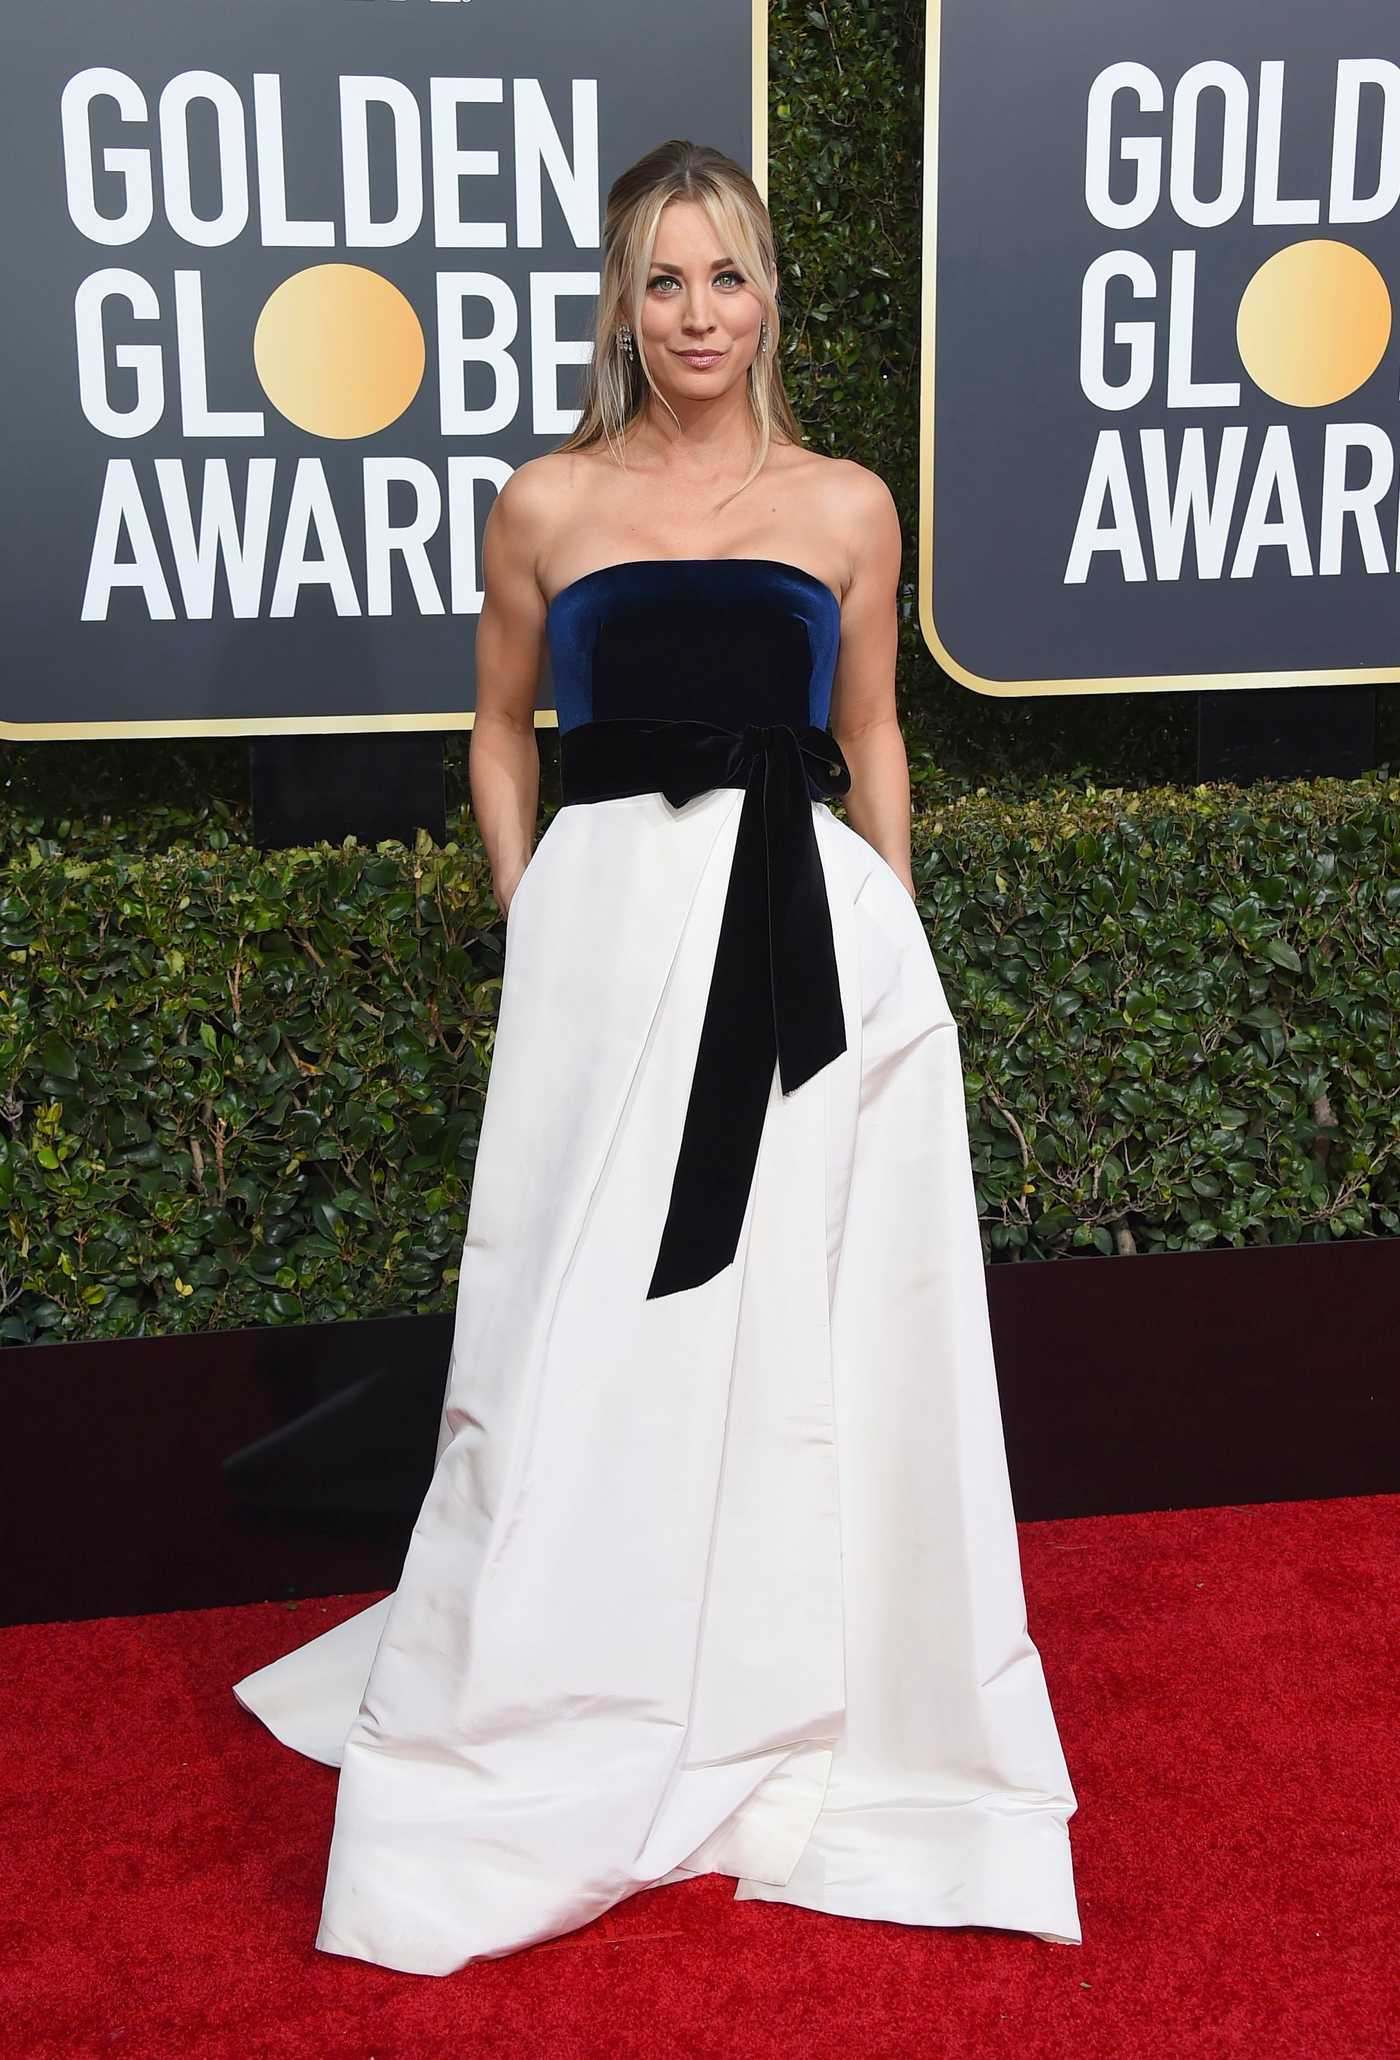 Kaley Cuoco Attends the 76th Annual Golden Globe Awards in Beverly Hills 01/06/2019